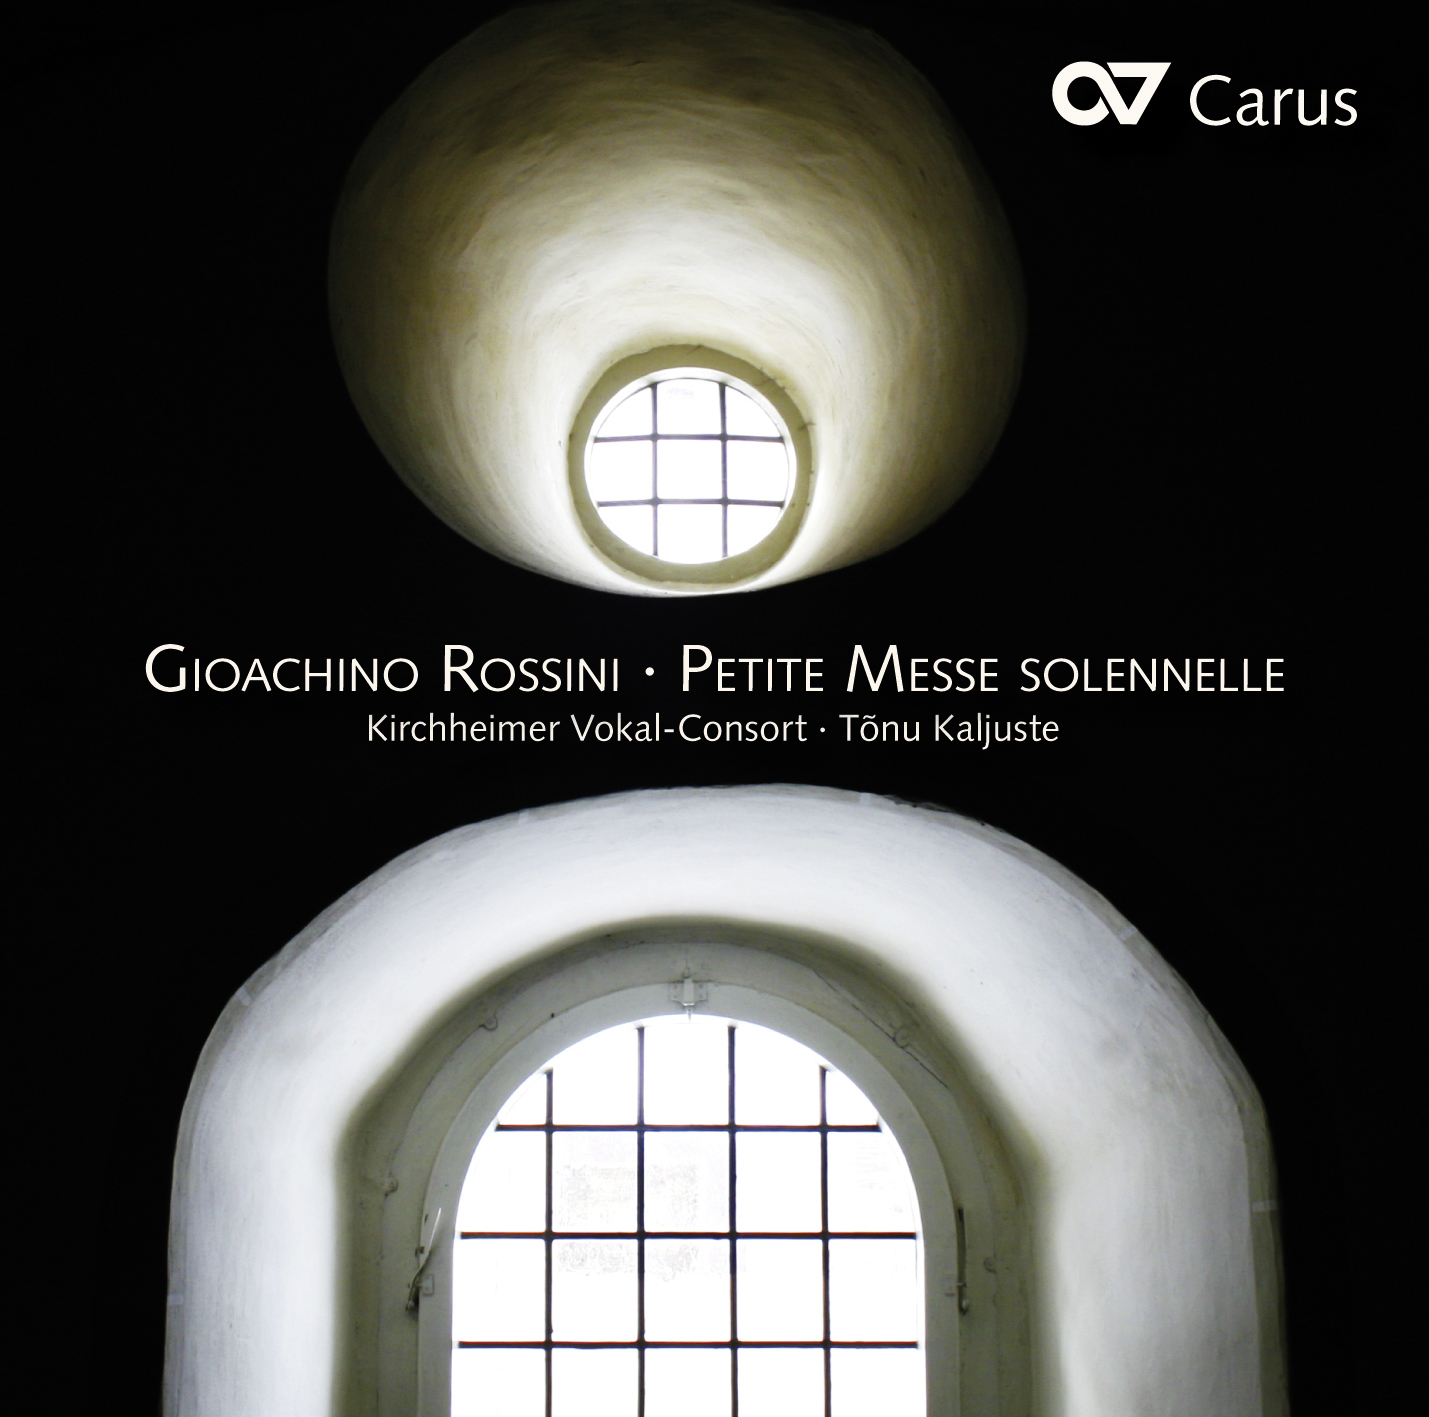 Petite messe solennelle (1863 chamber version), Petite messe solennelle (1863 chamber version): Gloria: Et in Terra